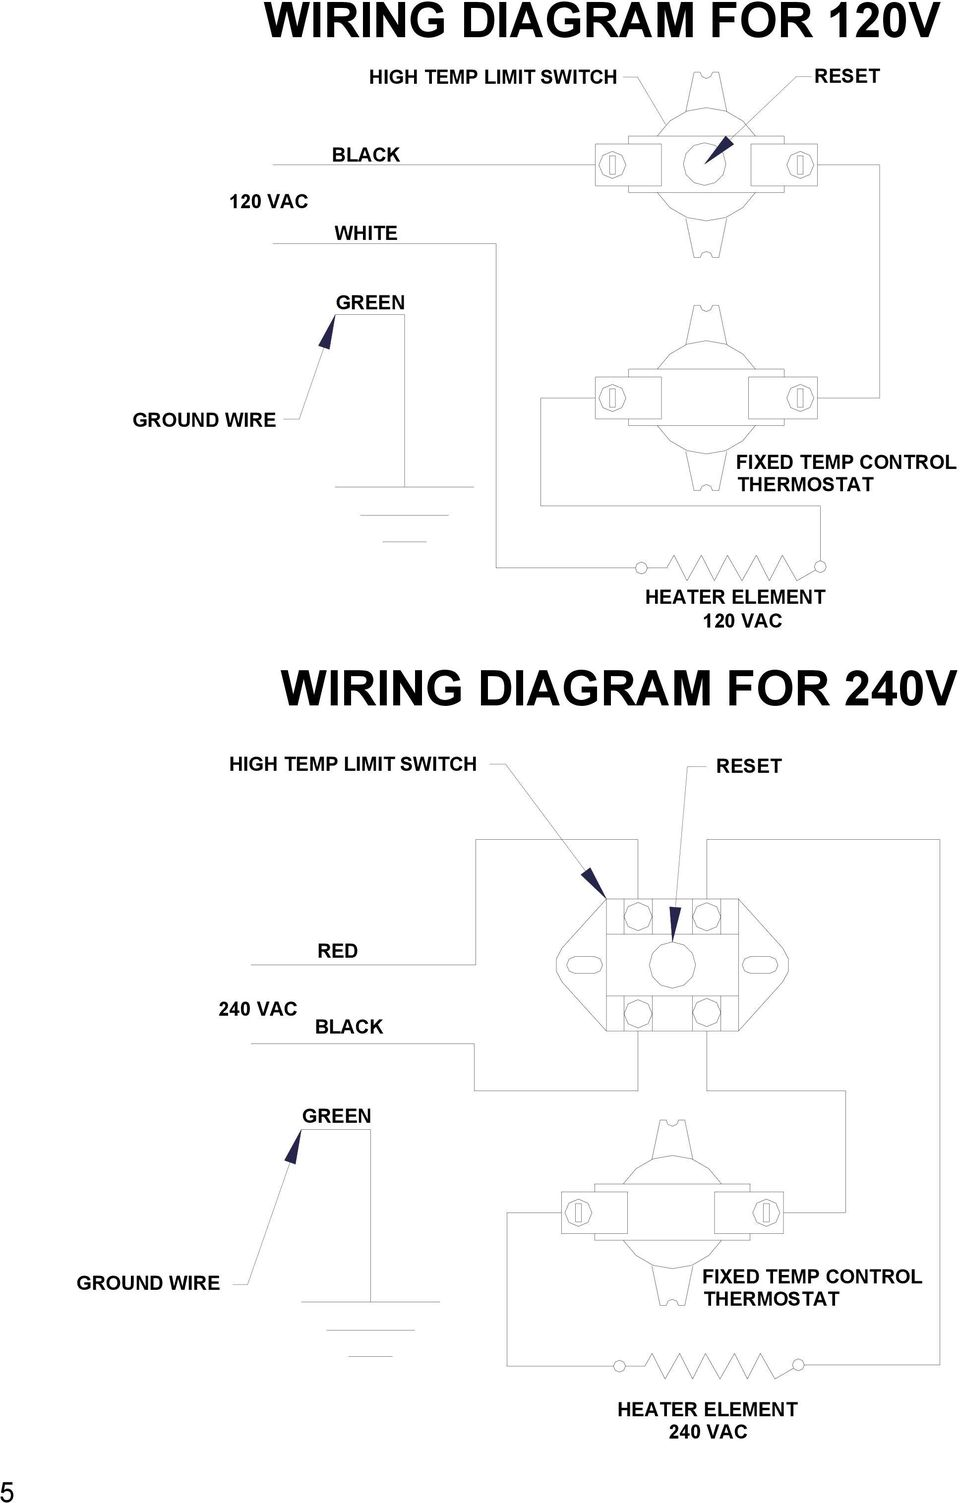 hight resolution of 120 vac wiring diagram for 240v high temp limit switch reset red 240